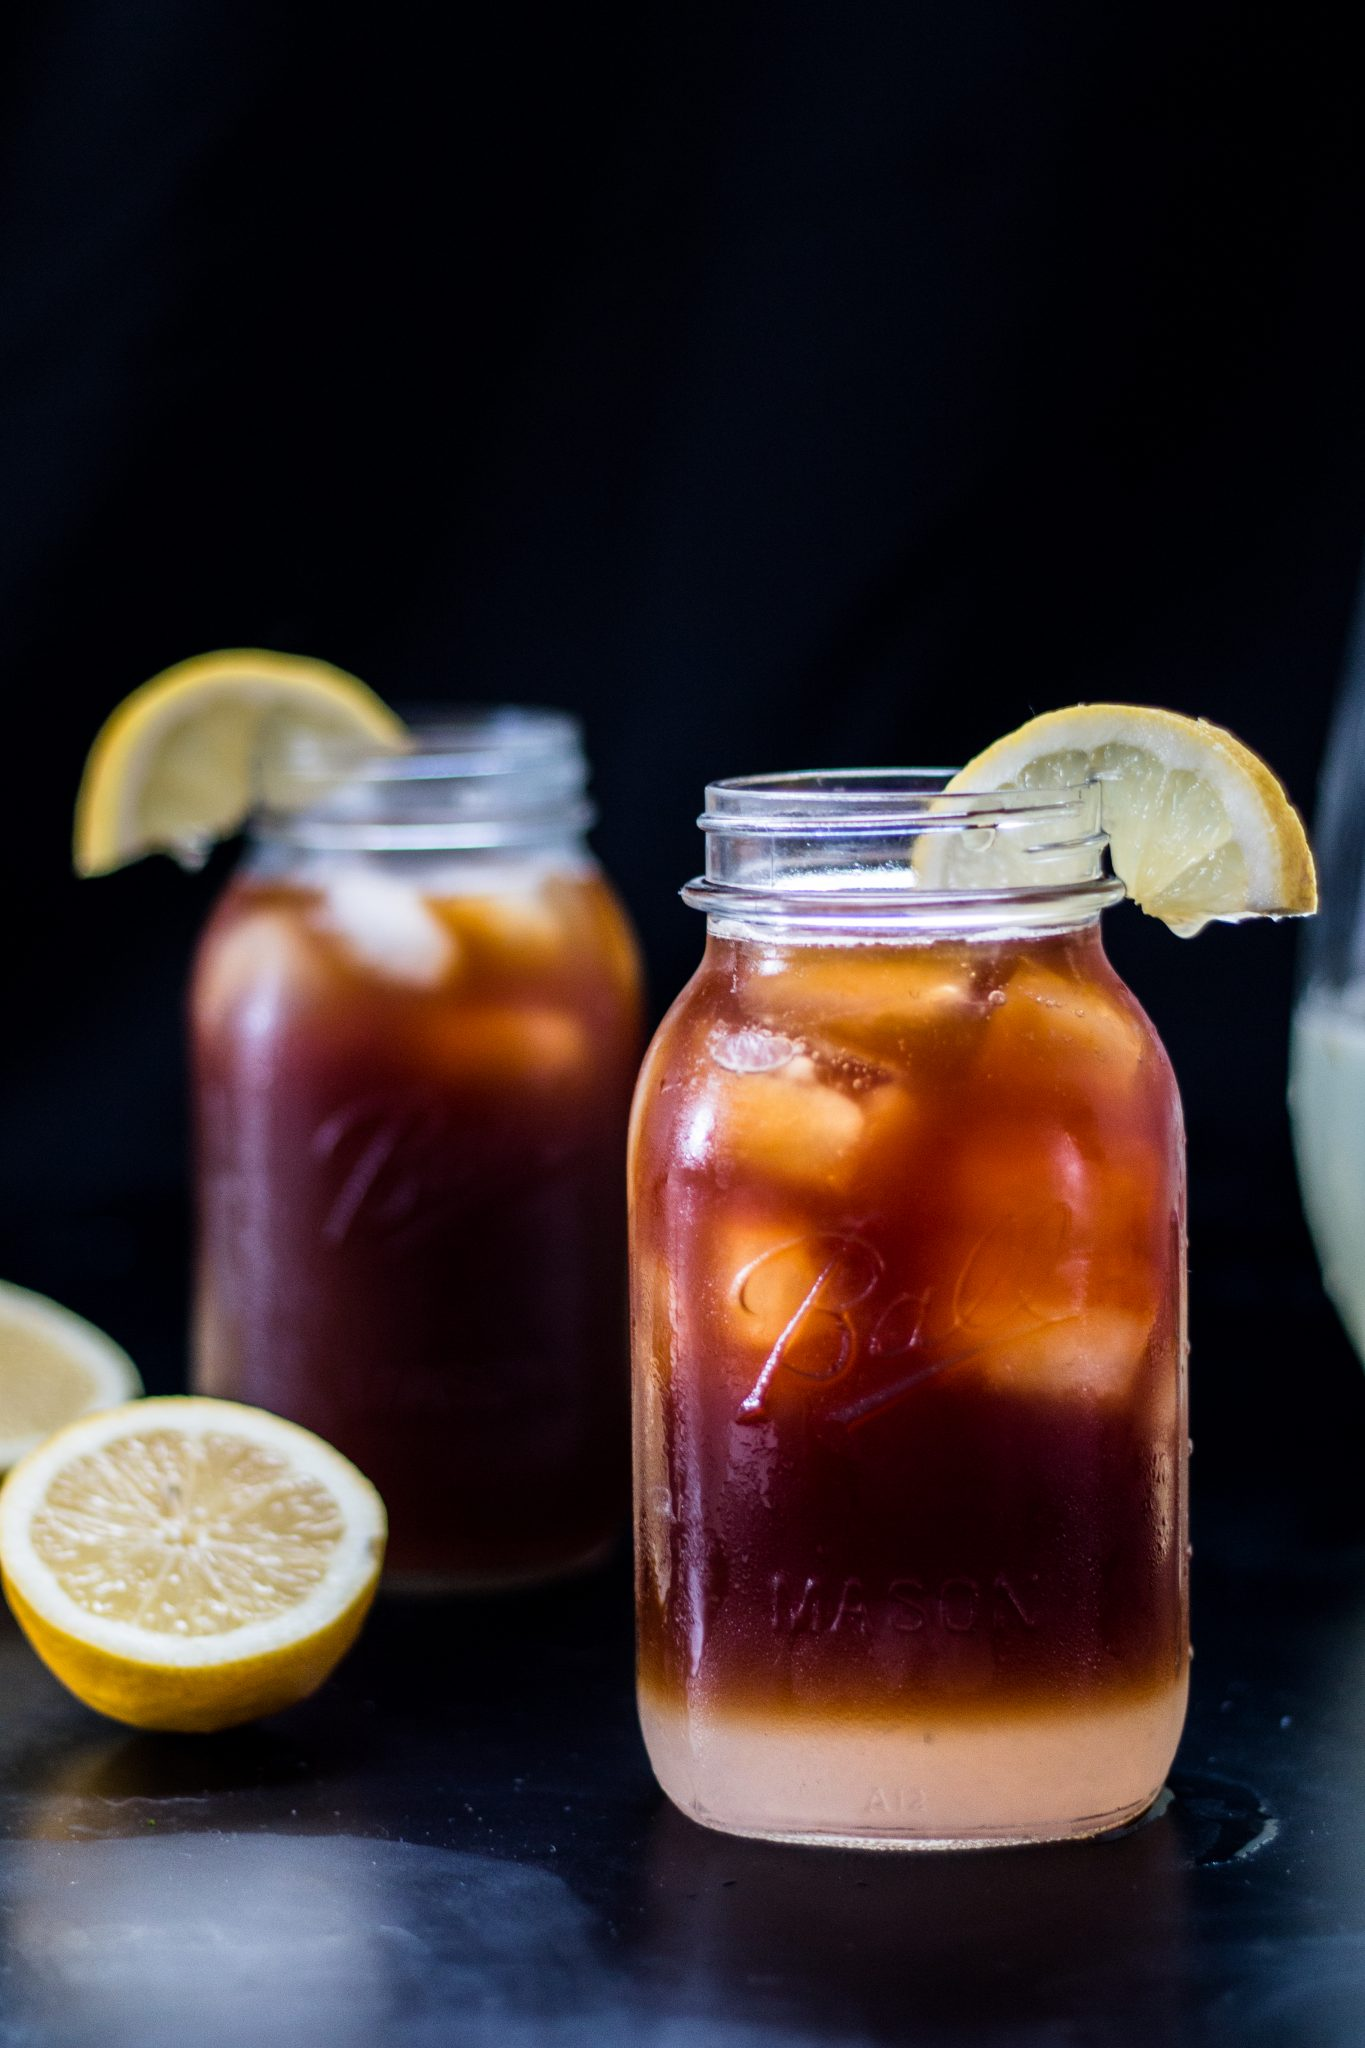 MG_24071Laura-Palmer-Coffee-Lemonade-Nutfree-Vegan-Nut-Allergy-Drink-Recipe-Iced-Refreshing-Amazing.jpg